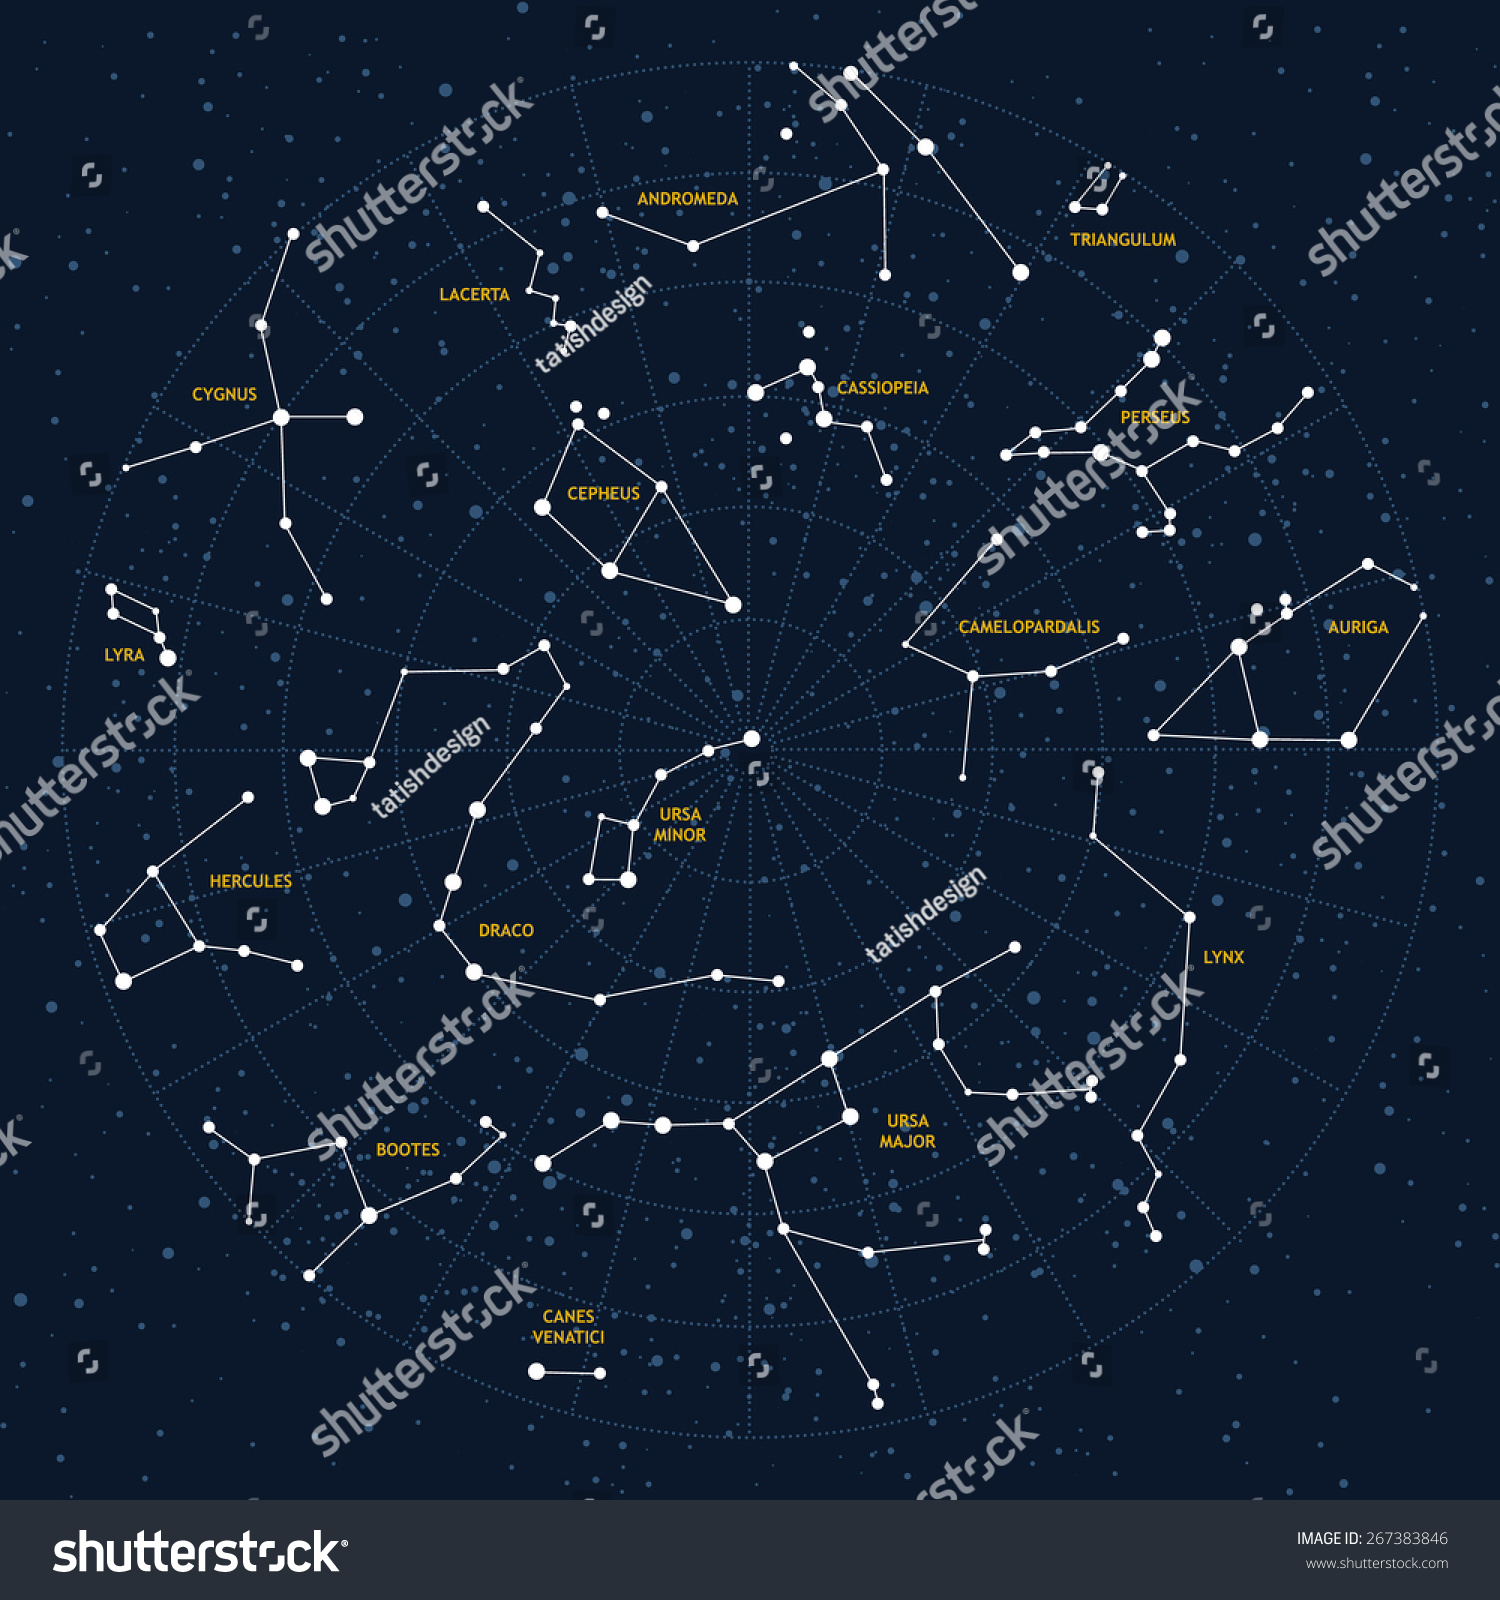 Fall Ceiling Wallpaper Download Vector Sky Map Constellations Stars Andromedalacerta Stock